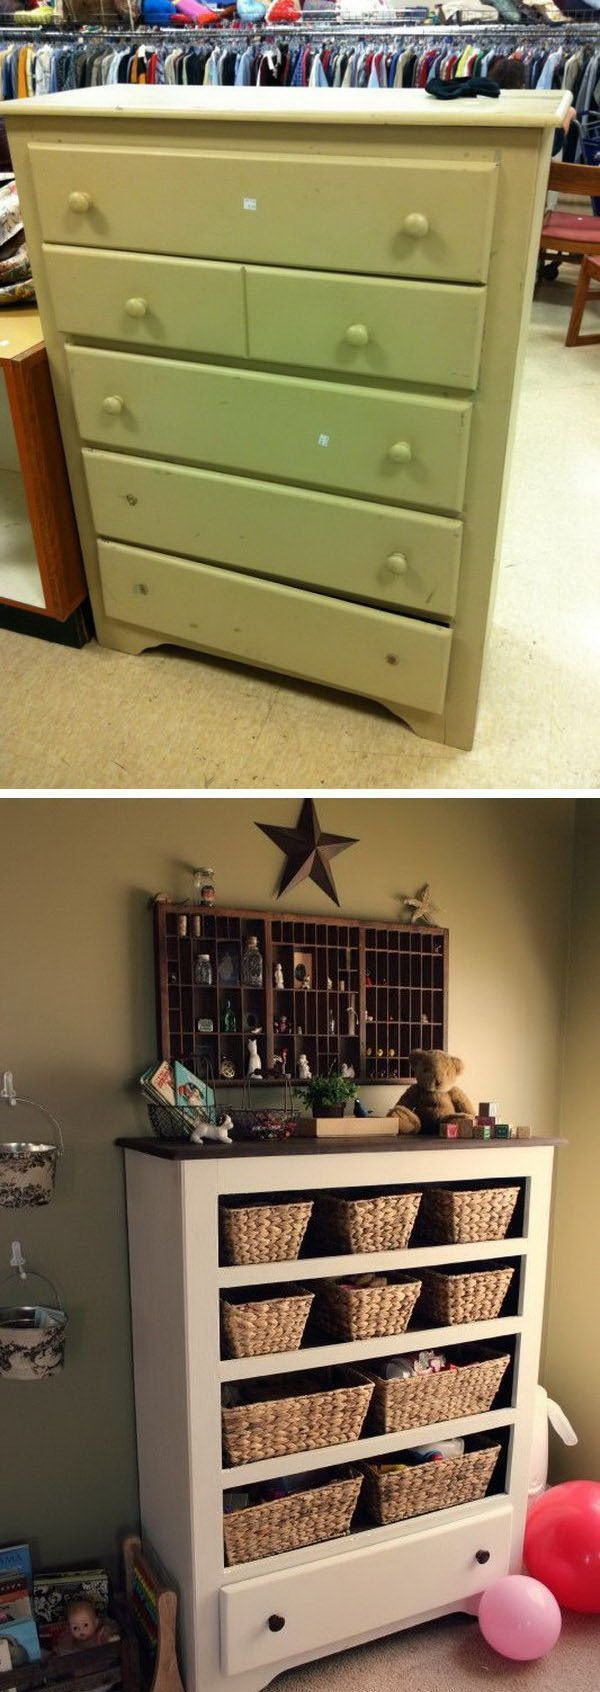 DIY Funny Functional Storage or Craft Supplies from a $9.50 Thrift Store Drawer .